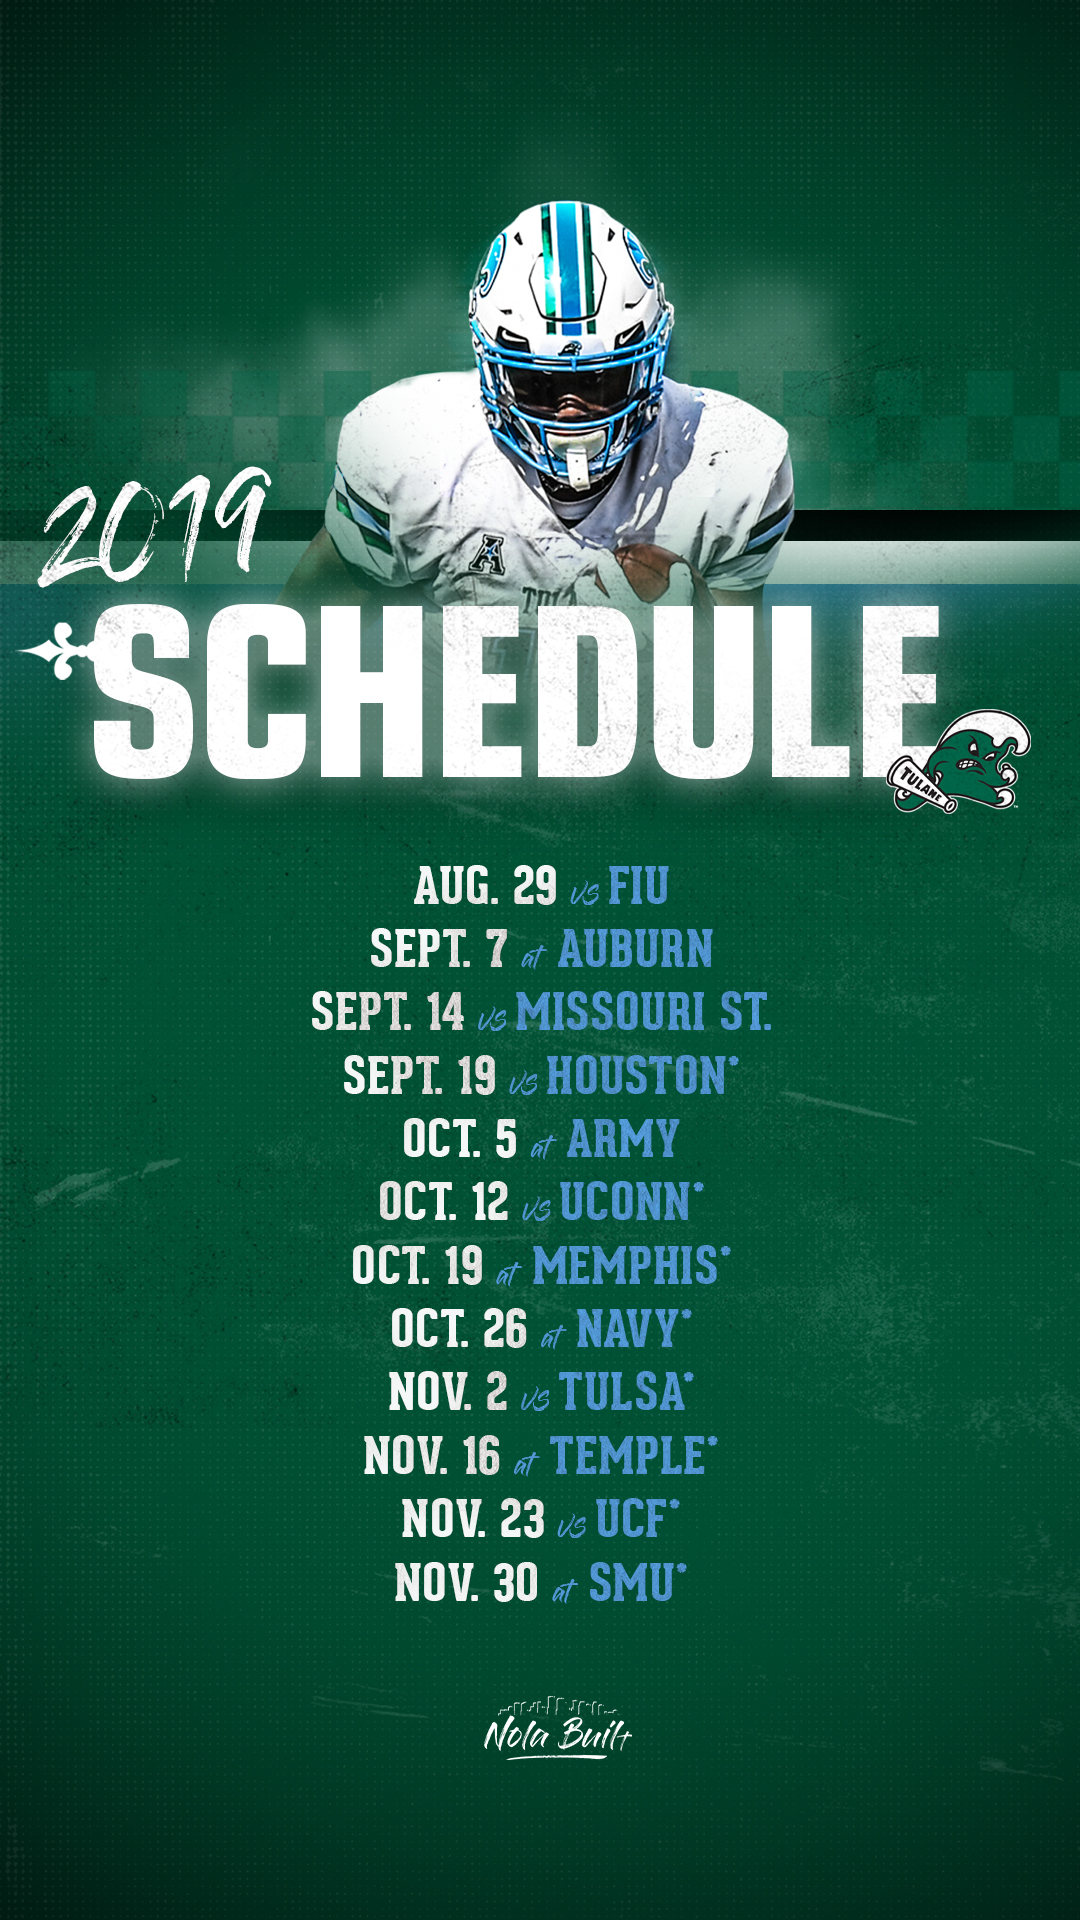 Ucf Football Schedule 2020.Tulane Announces 2019 Football Schedule Tulane University